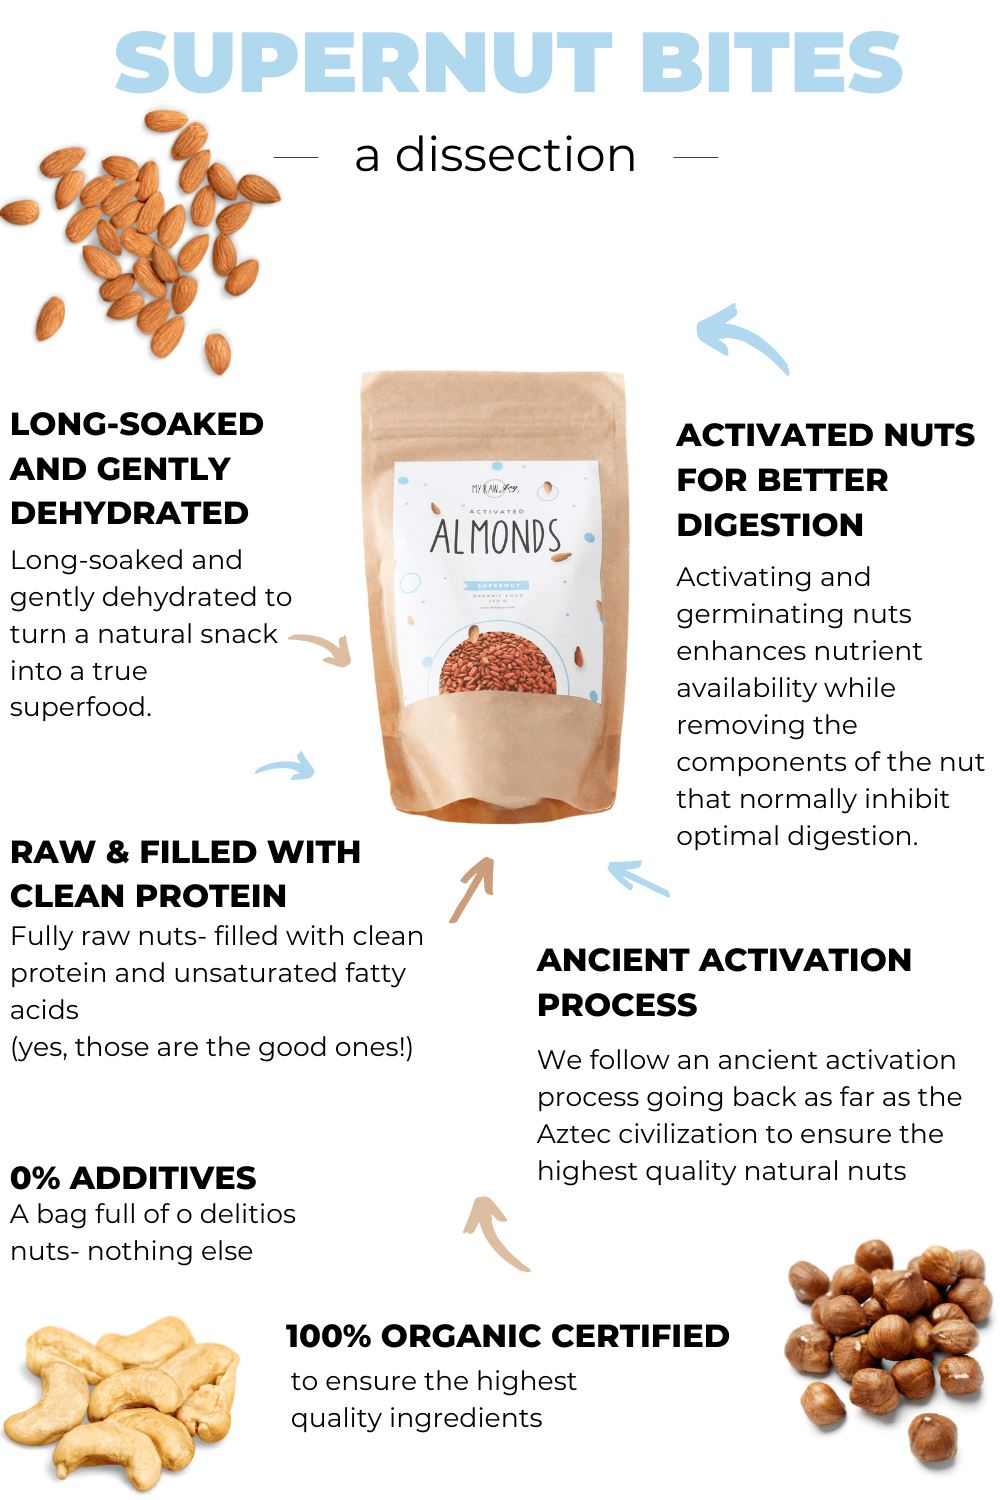 Activated Almond Supernut Bites SuperNut Bites MyRawJoy